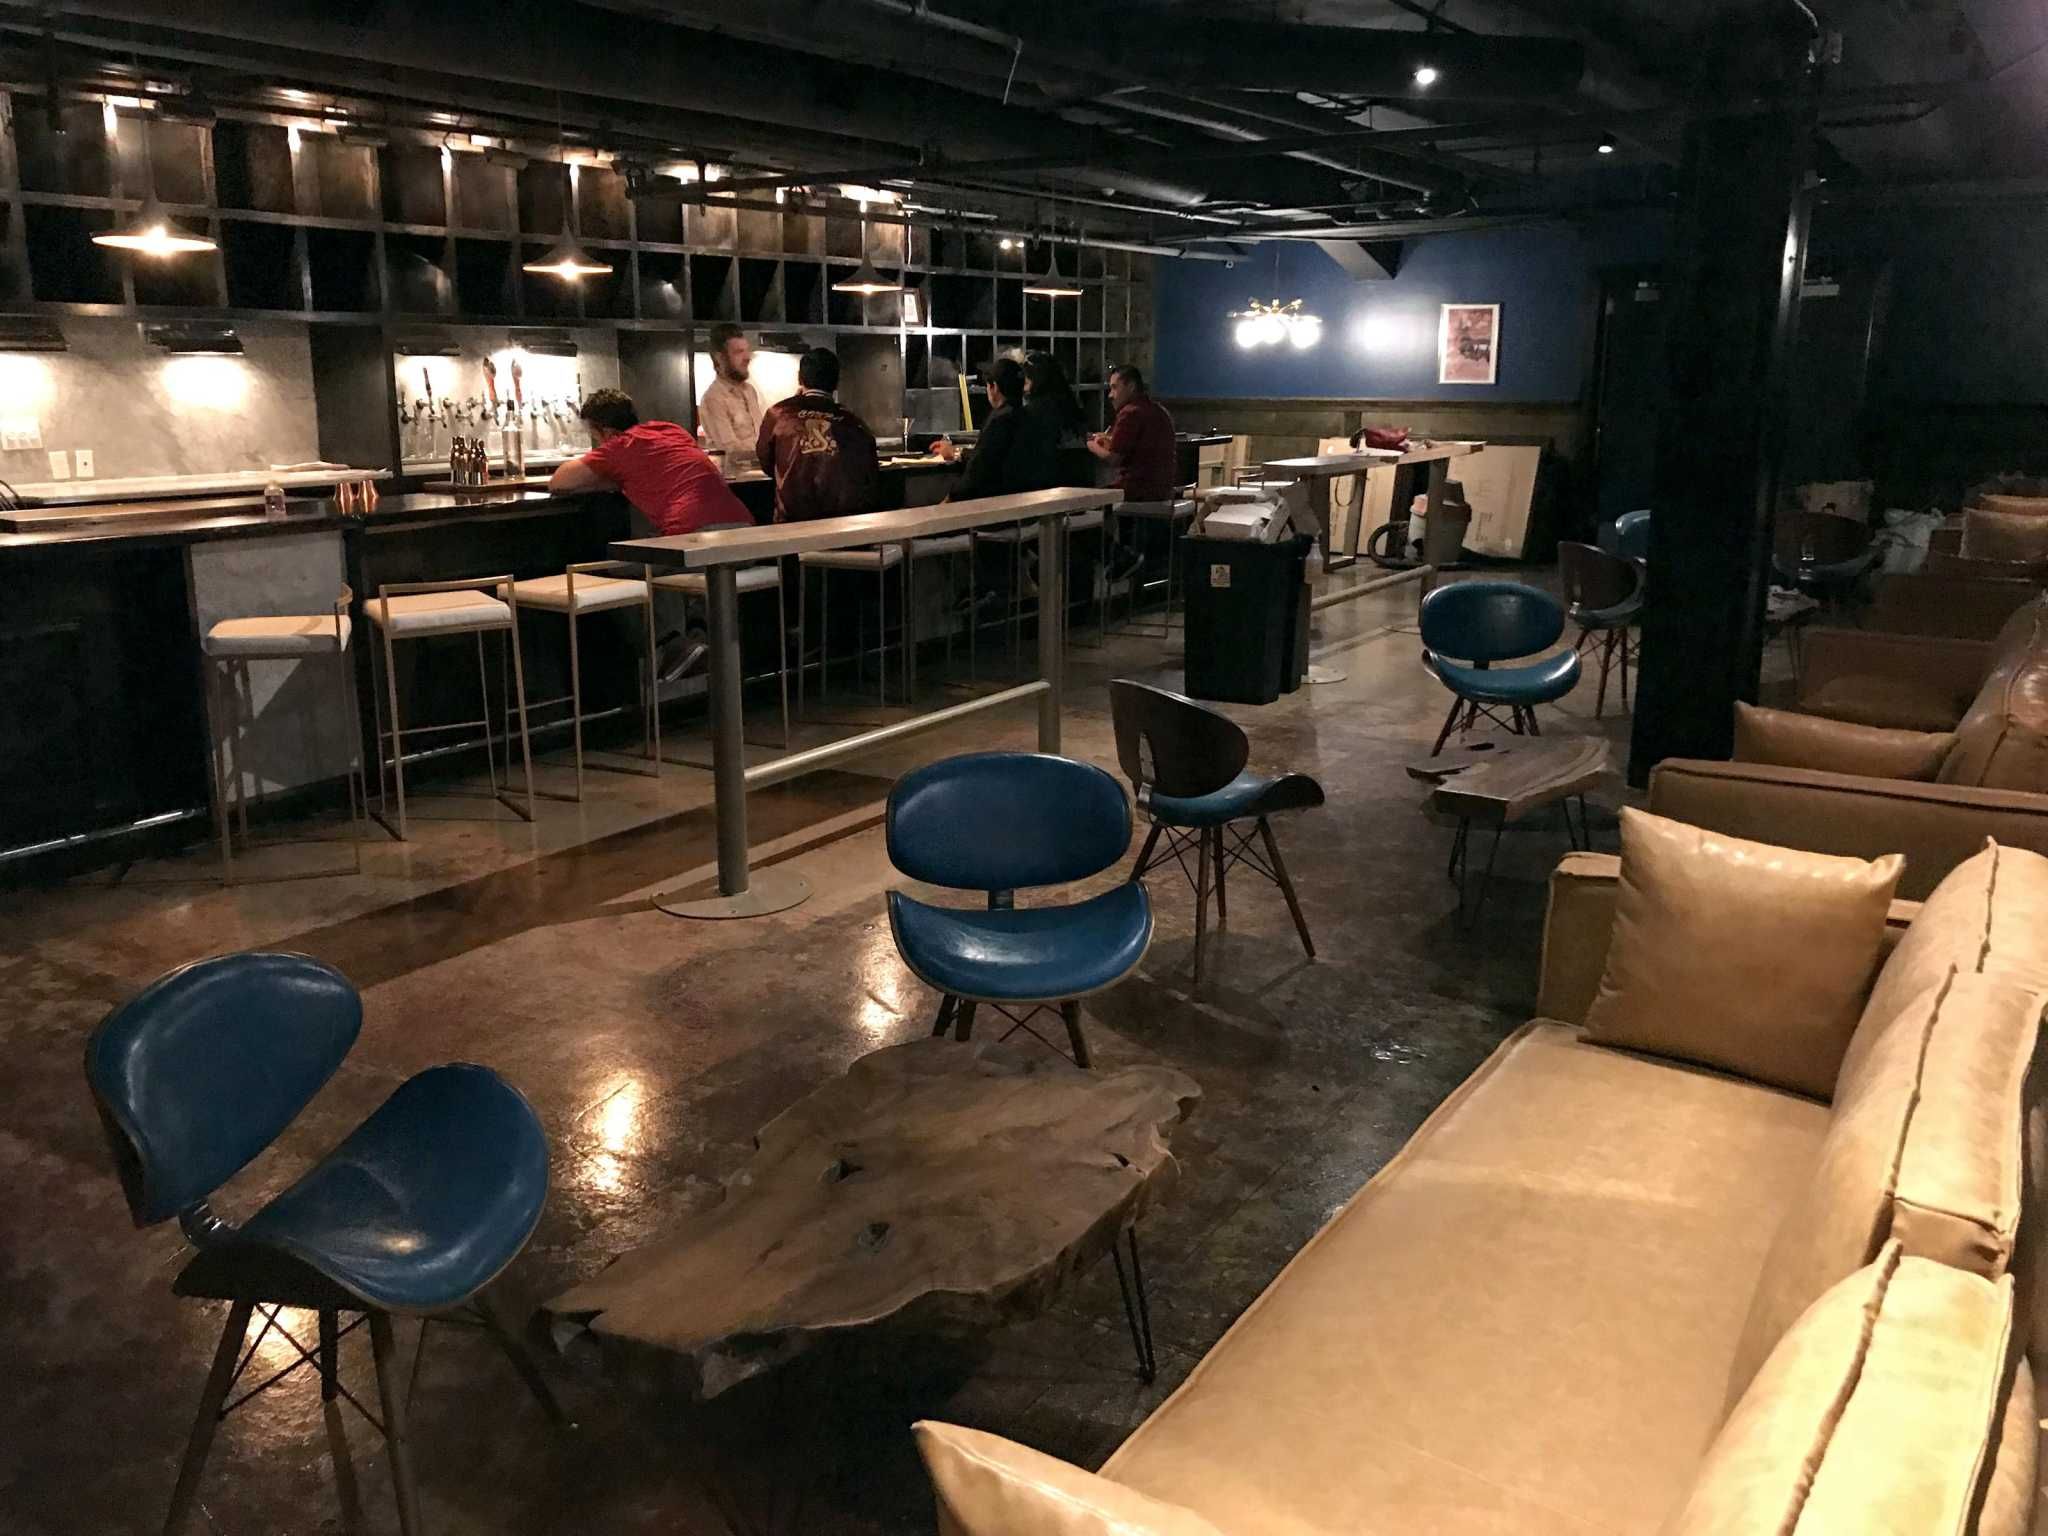 Stylish Downtown Cocktail Lounge Jet Setter Set To Land Soon On Houston Street In Former Last Word